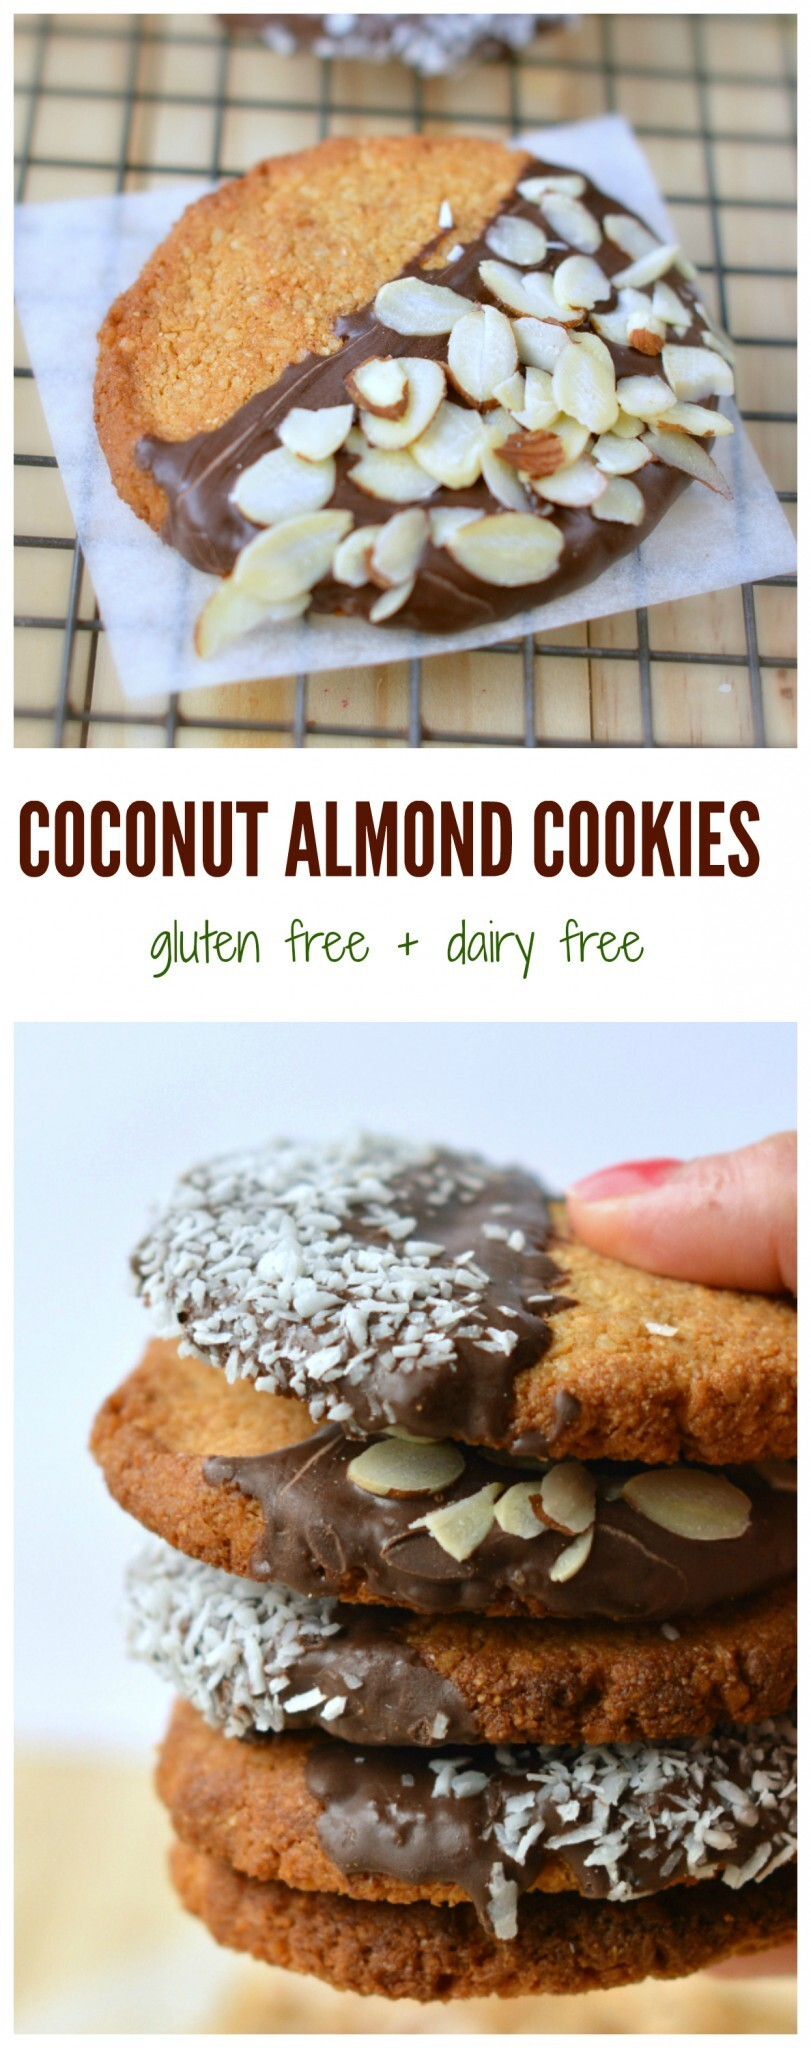 Coconut Almond Cookies | Gluten free + Grain free + Vegan